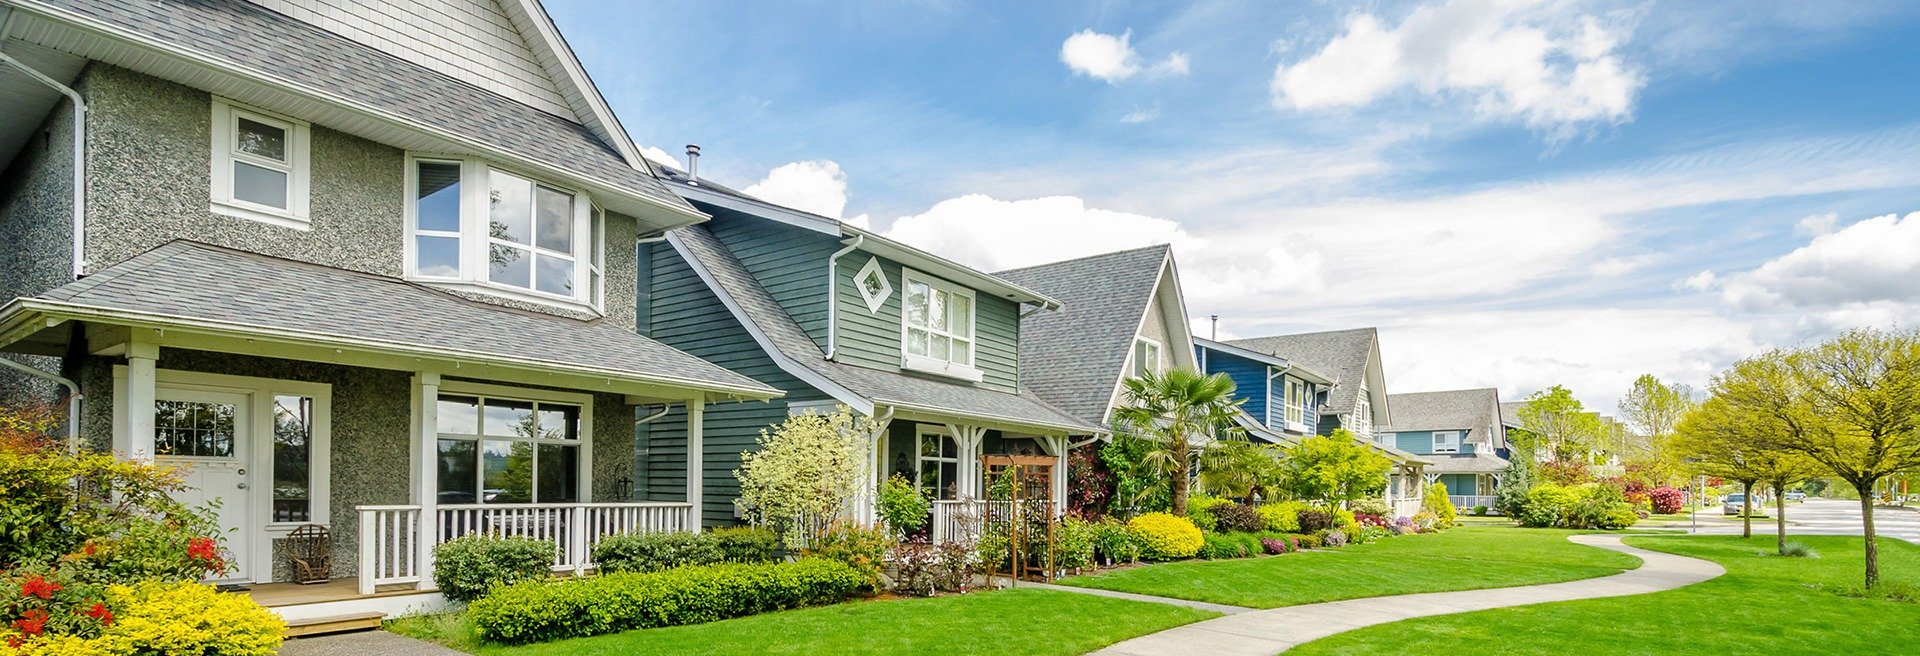 6 Reasons You Should Live in a Community With a Professionally Managed HOA